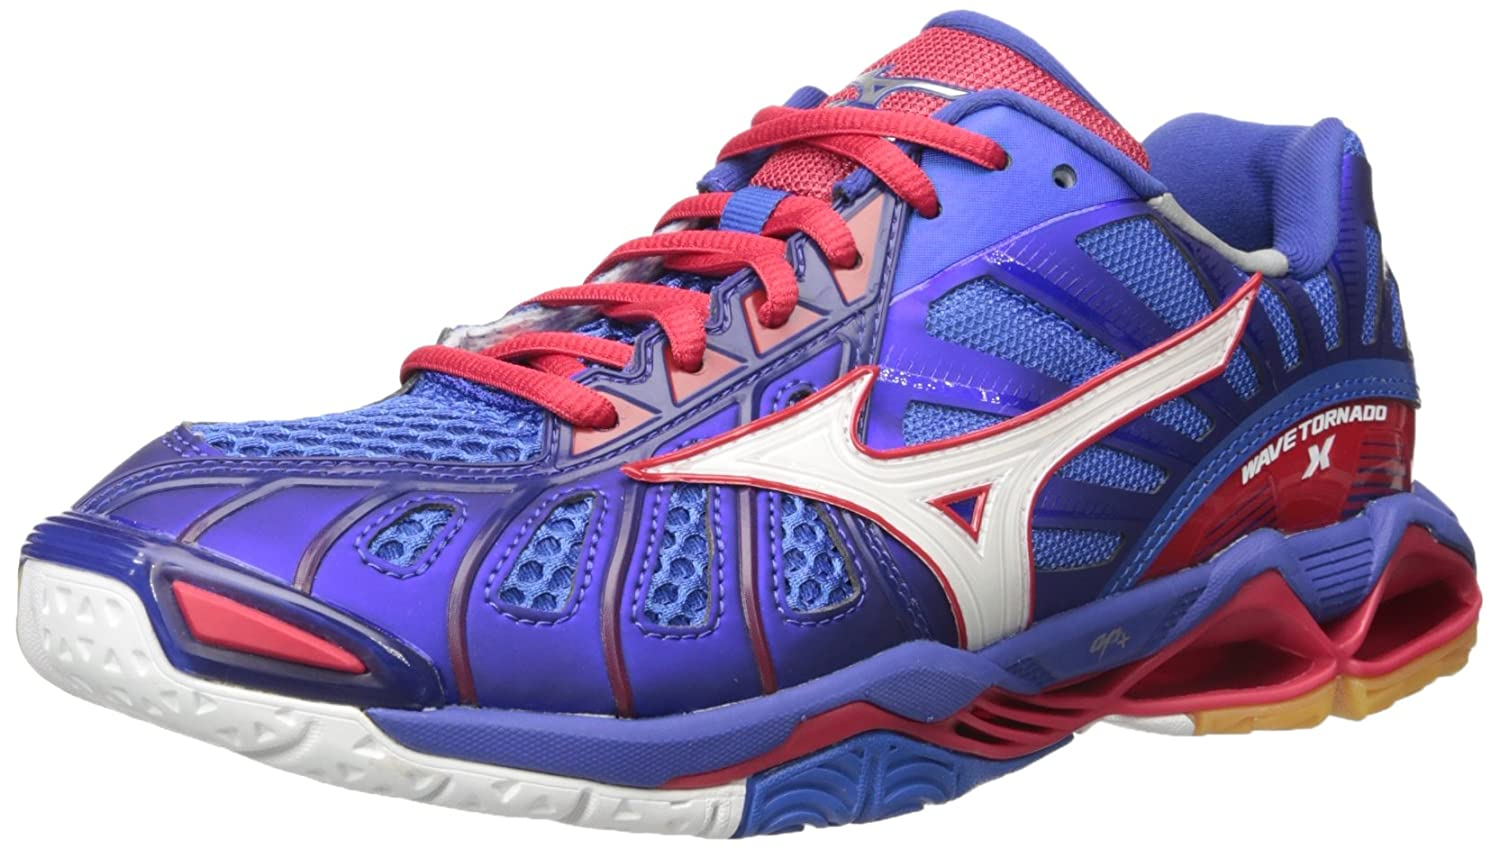 Mizuno Men's Wave Tornado X Volleyball-Shoes B01N943LXB 14 D(M) US|Mazarine Blue/Lollipop